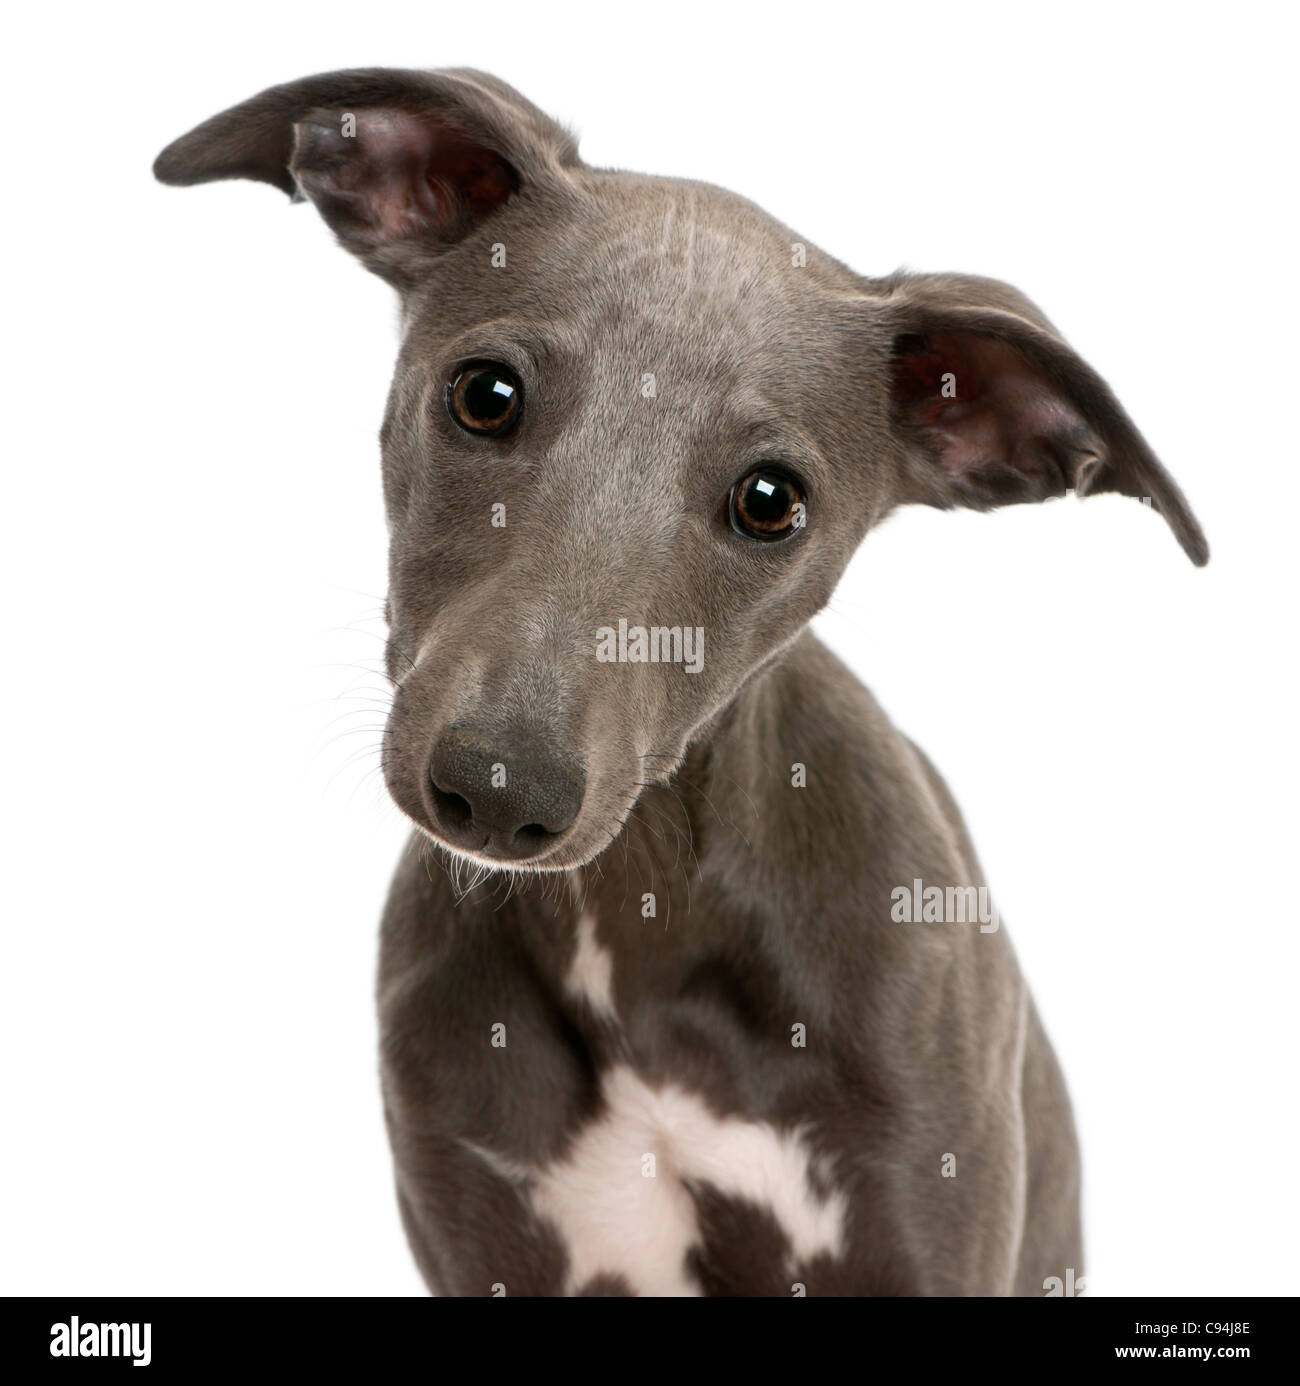 Close-up of Whippet puppy, 6 months old, in front of white background - Stock Image